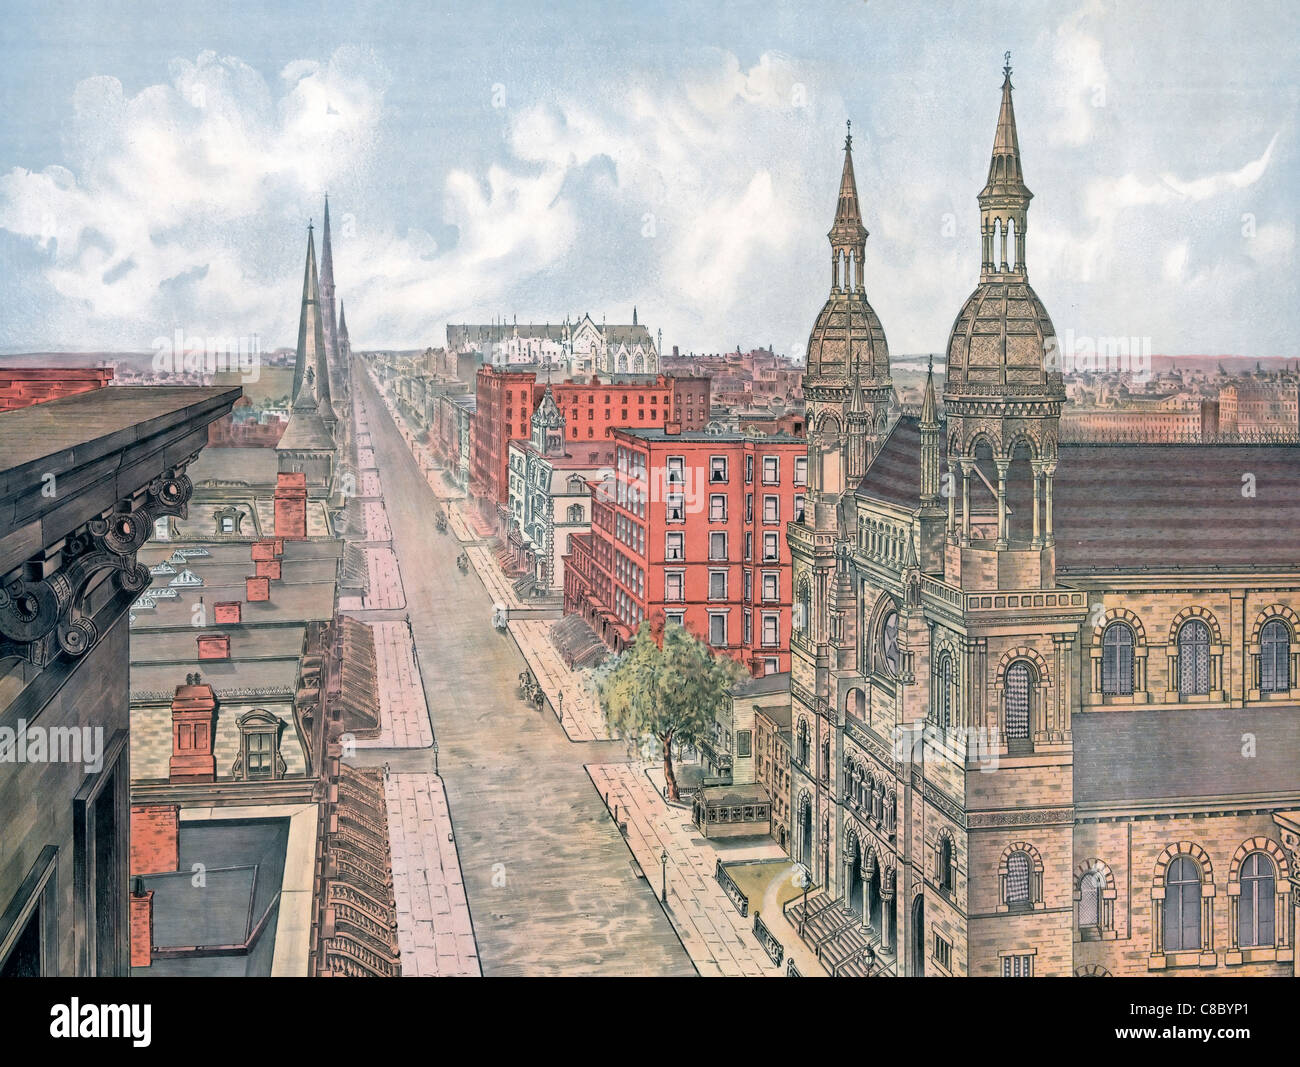 Fifth avenue from 42nd street, looking north, New York City, circa 1879 - Stock Image